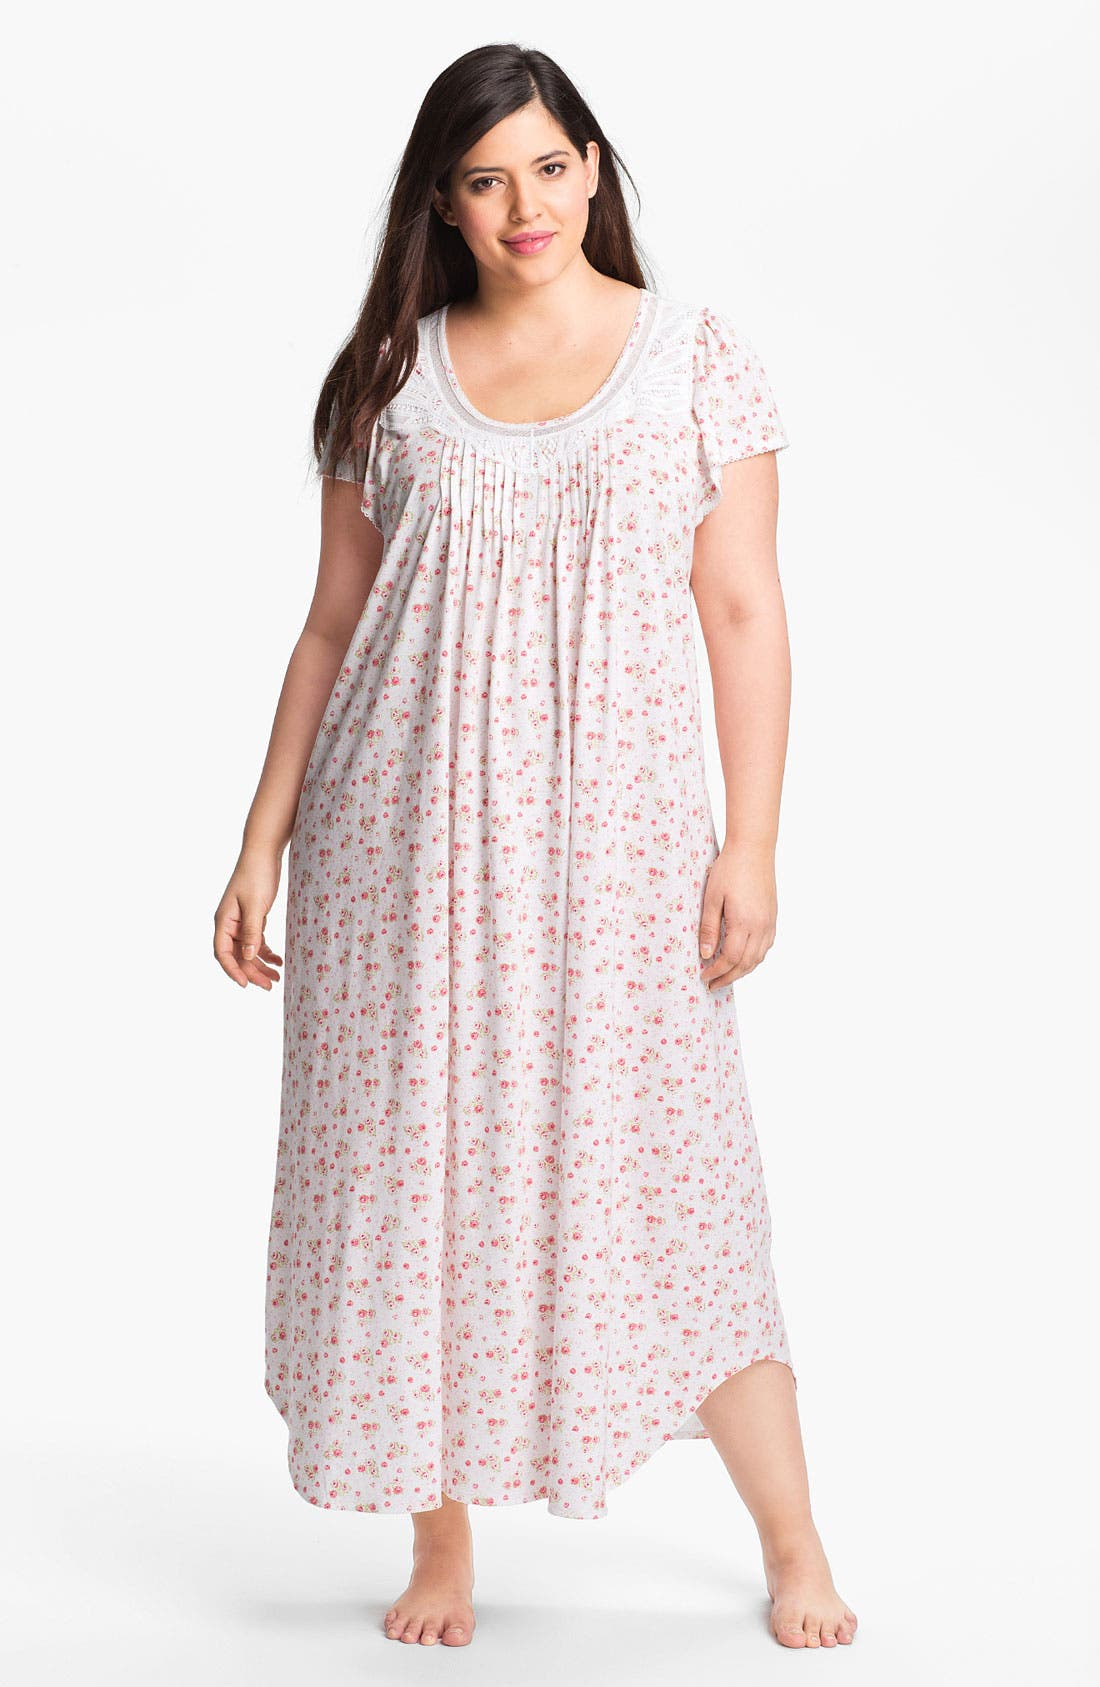 Main Image - Carole Hochman Designs 'Rose Cottage' Nightgown (Plus)